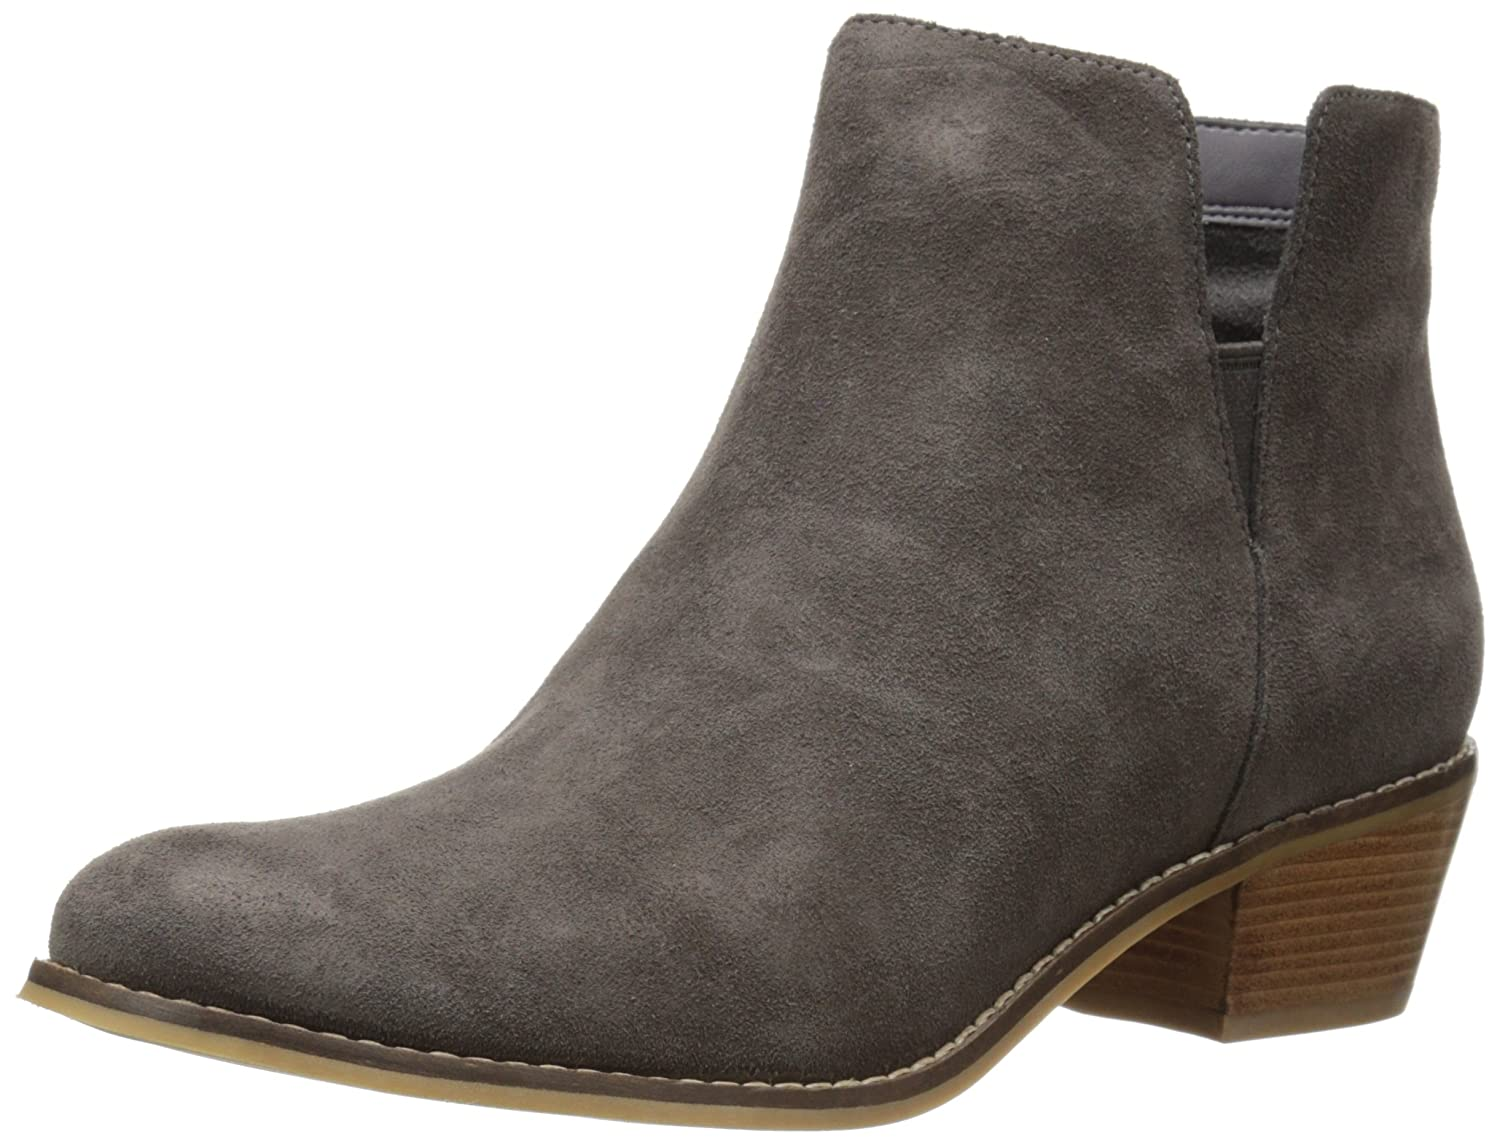 Cole Haan Women's Abbot Ankle Boot B01M0G2N26 9 C US|Stormcloud Suede